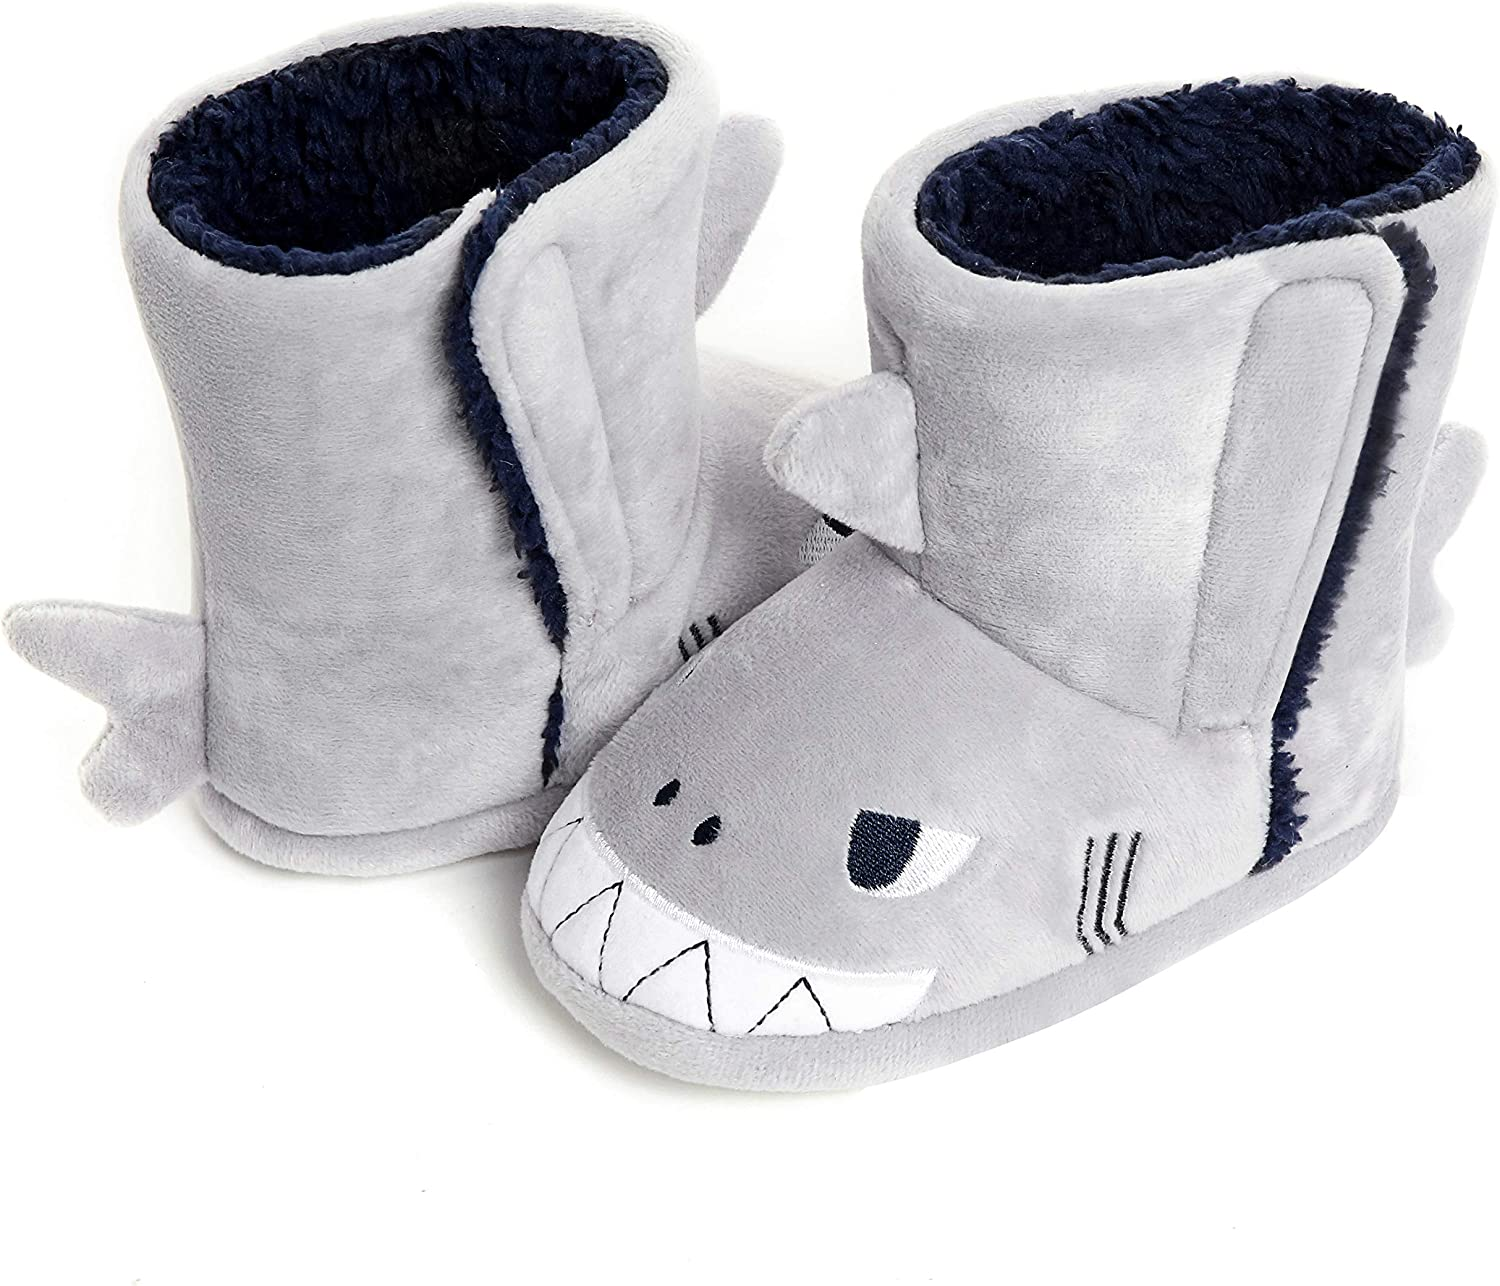 Toddlers Boy Shark Slippers Booties Plush Indoor Winter House Slippers